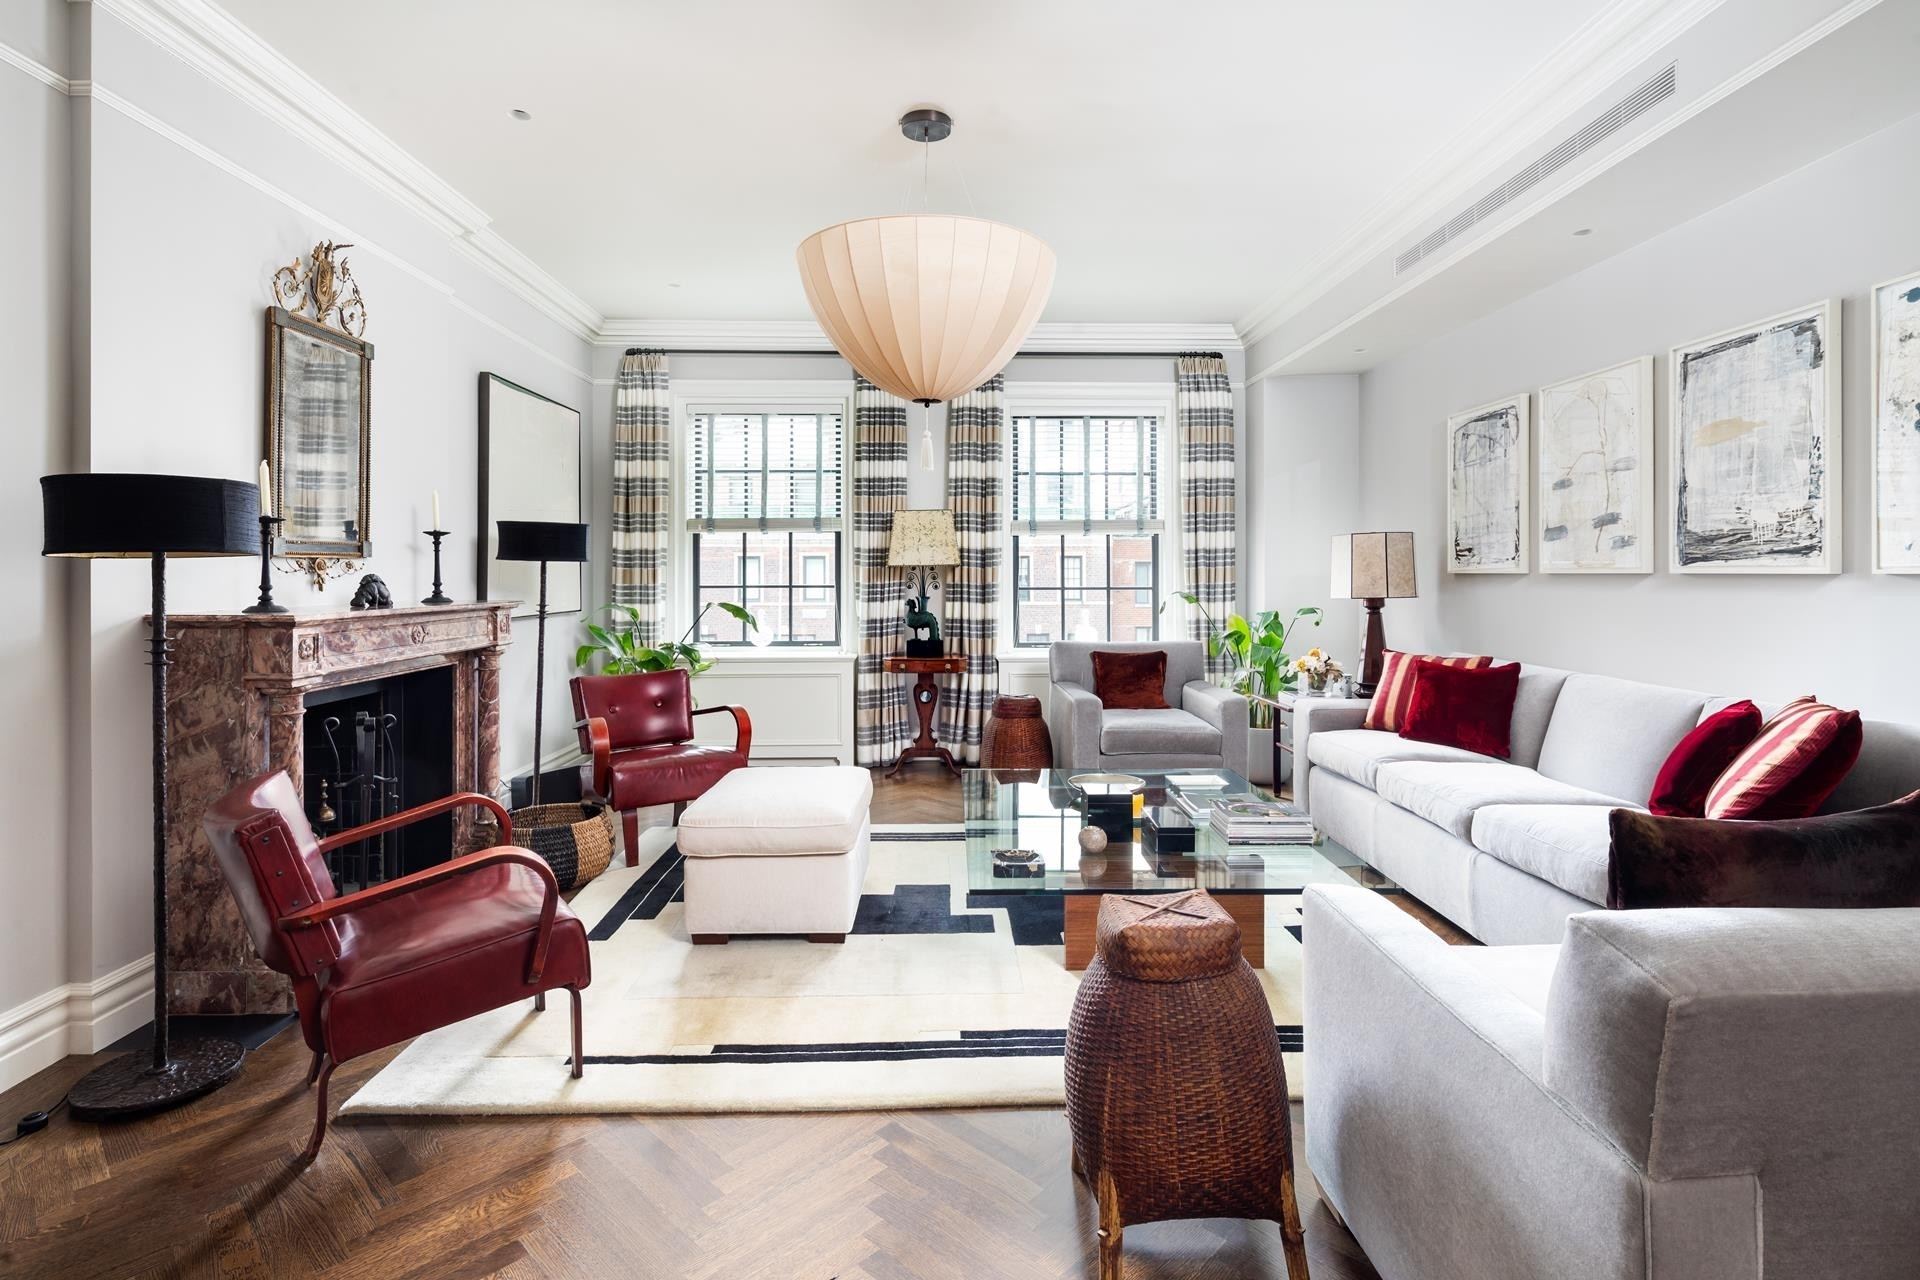 Co-op Properties for Sale at 447 E 57TH ST , 15 Sutton Place, New York, NY 10022